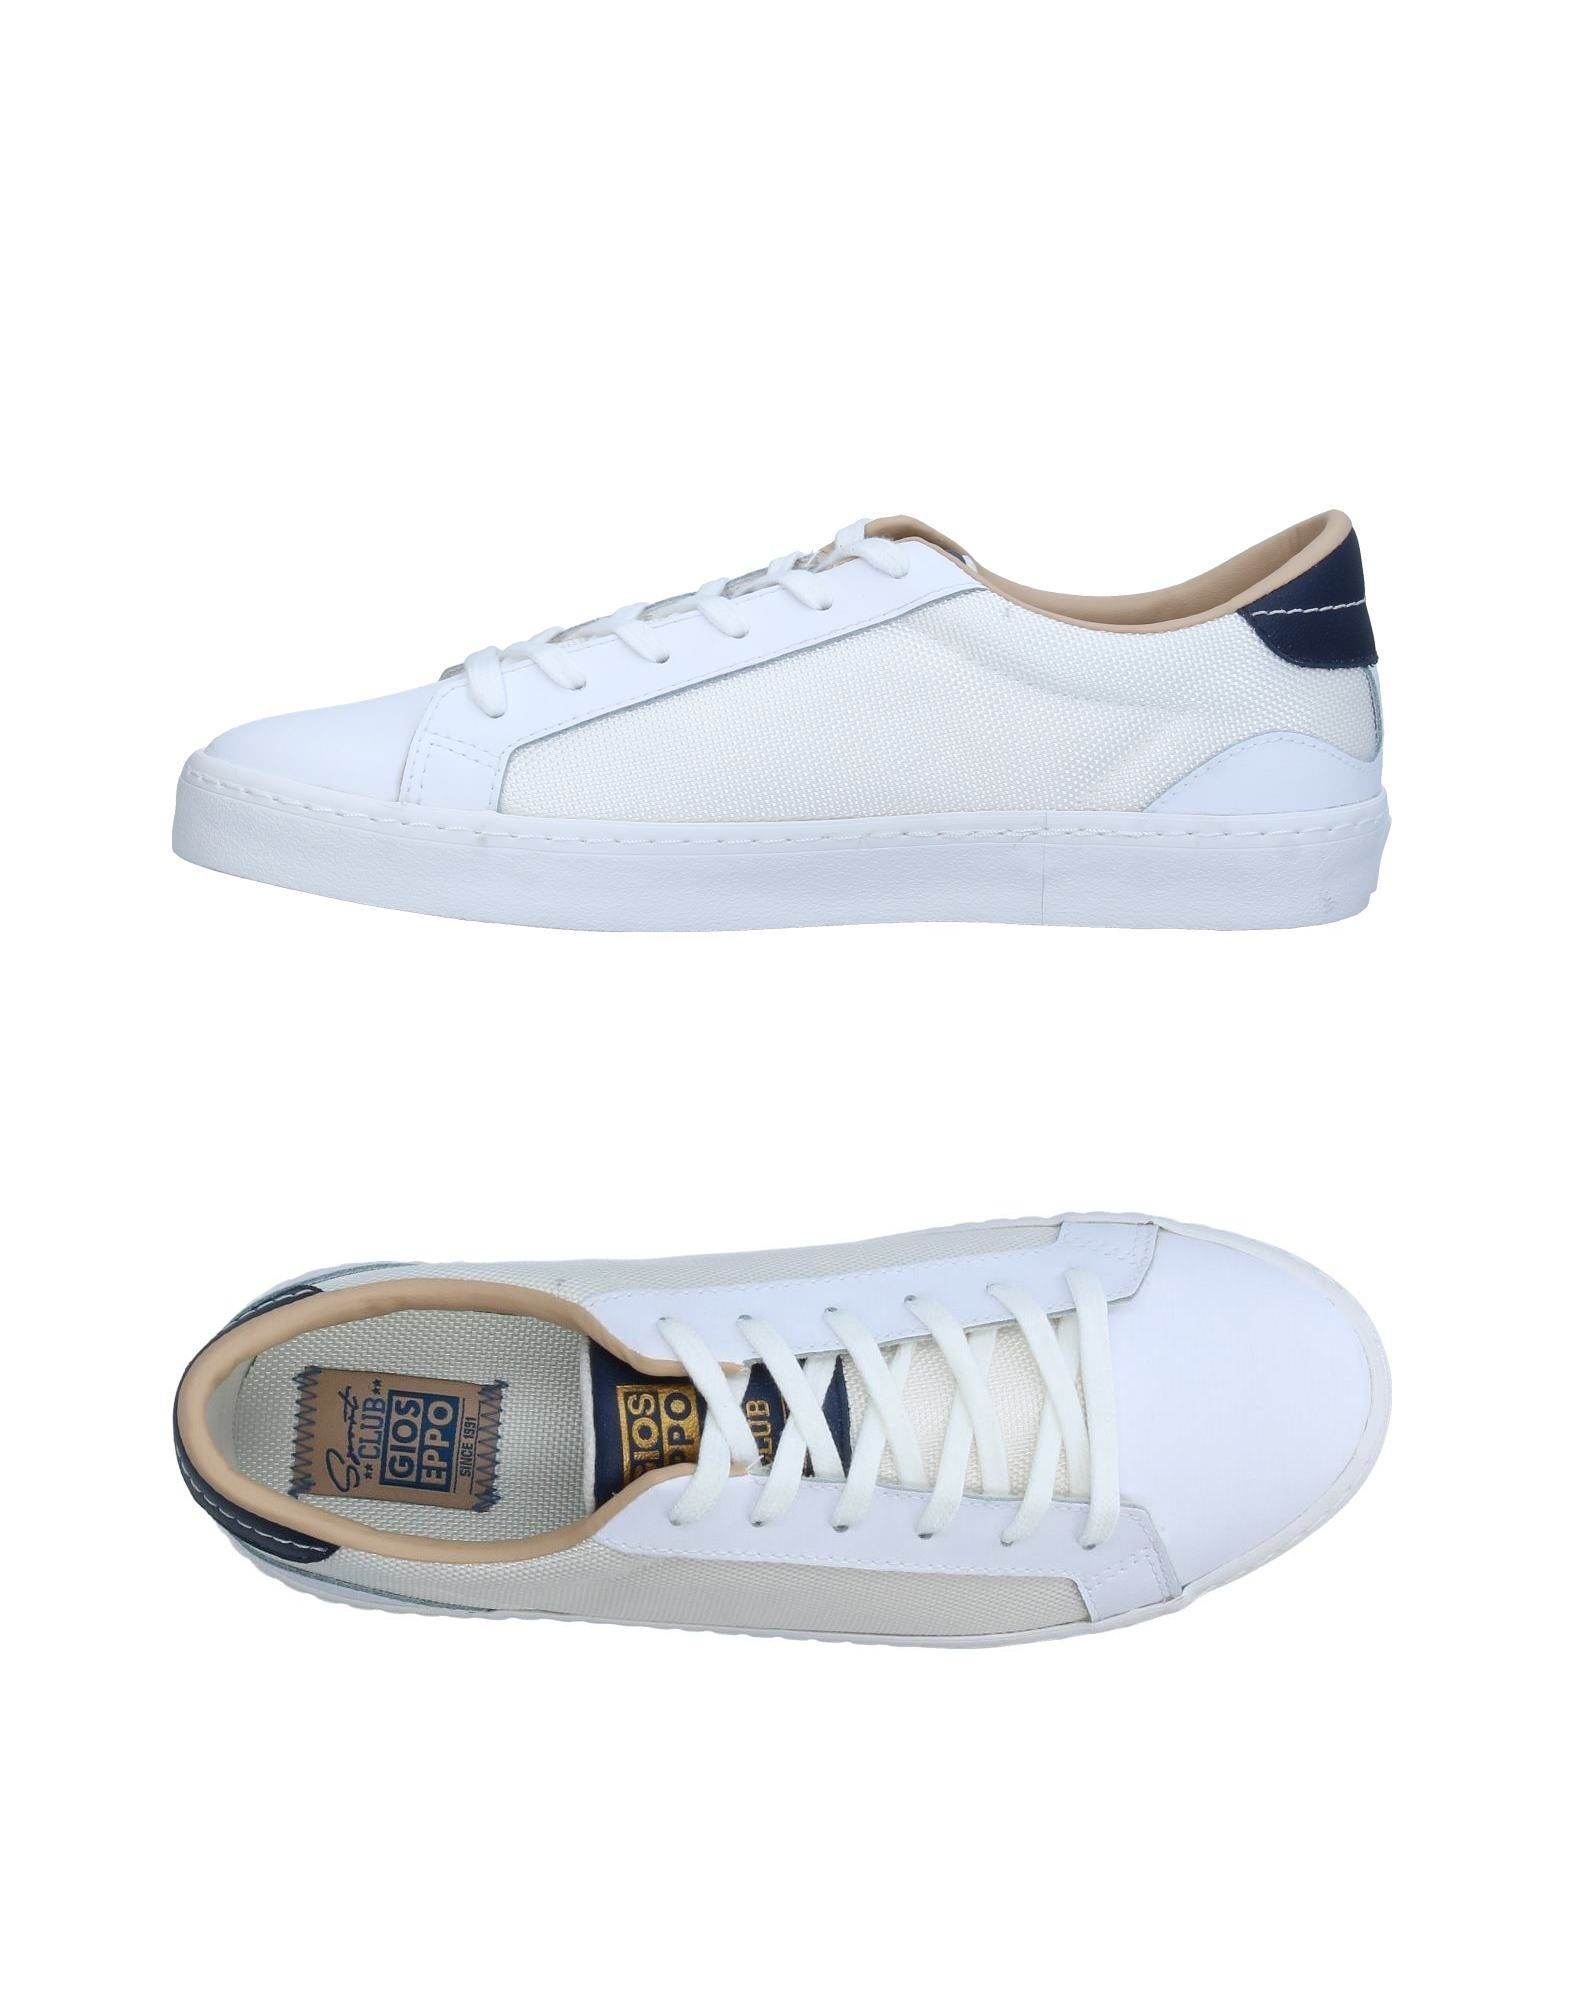 Sneakers Gioseppo Homme - Sneakers Gioseppo  Blanc Dédouanement saisonnier